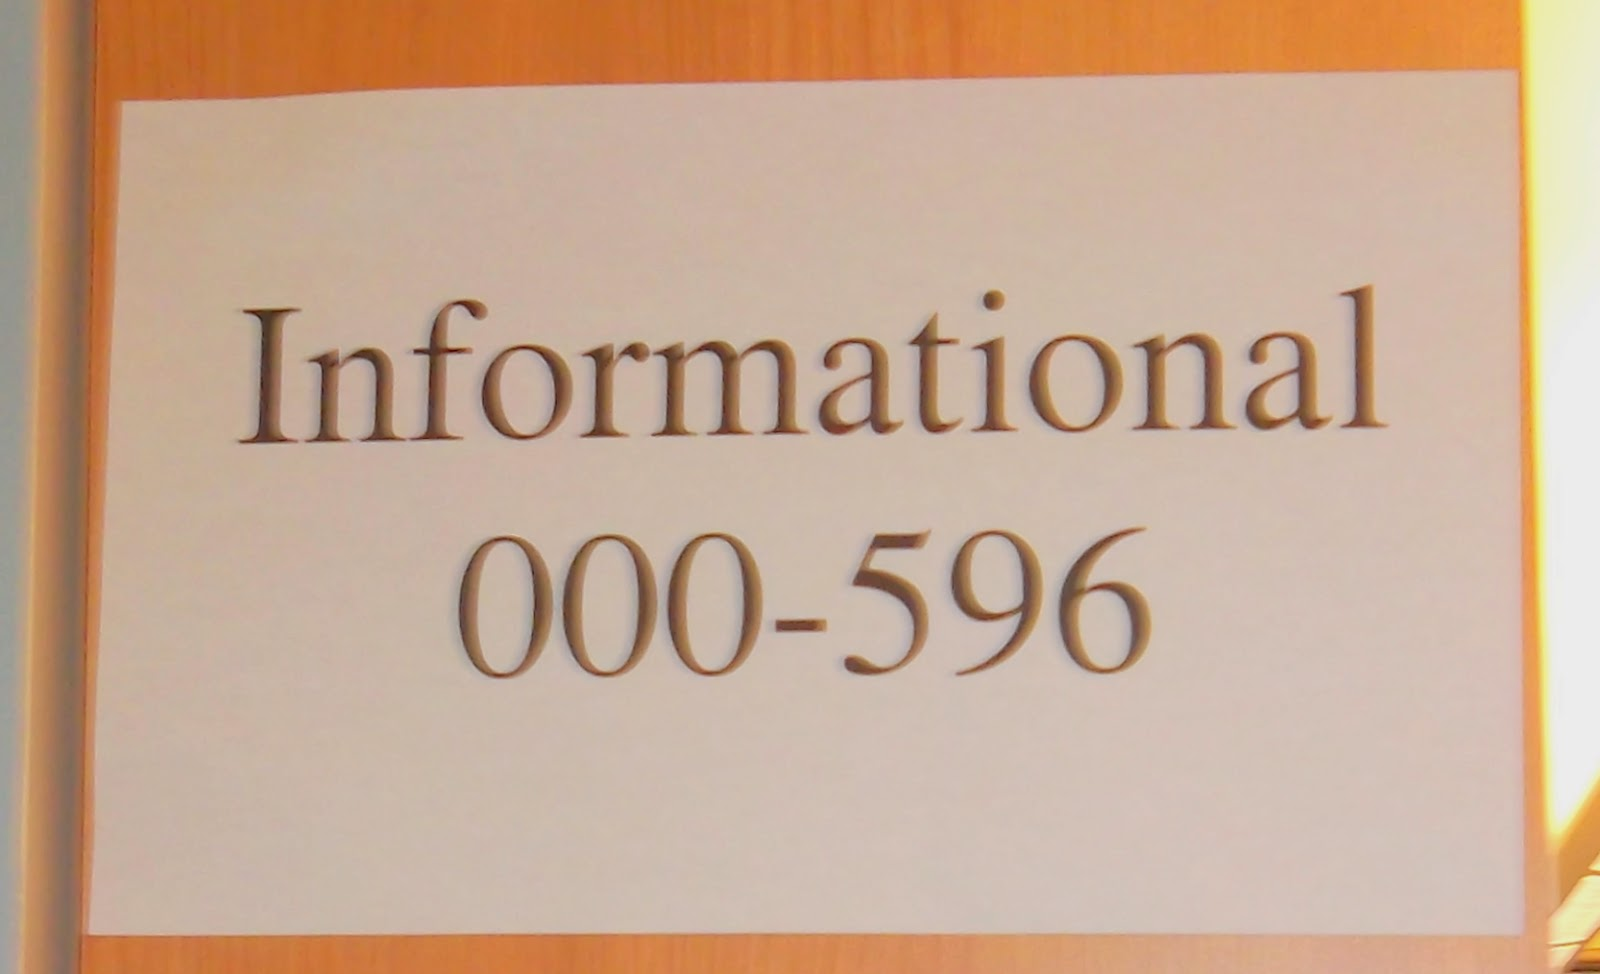 Sign bearing the word Informational and Dewey Decimal number range 000 to 596